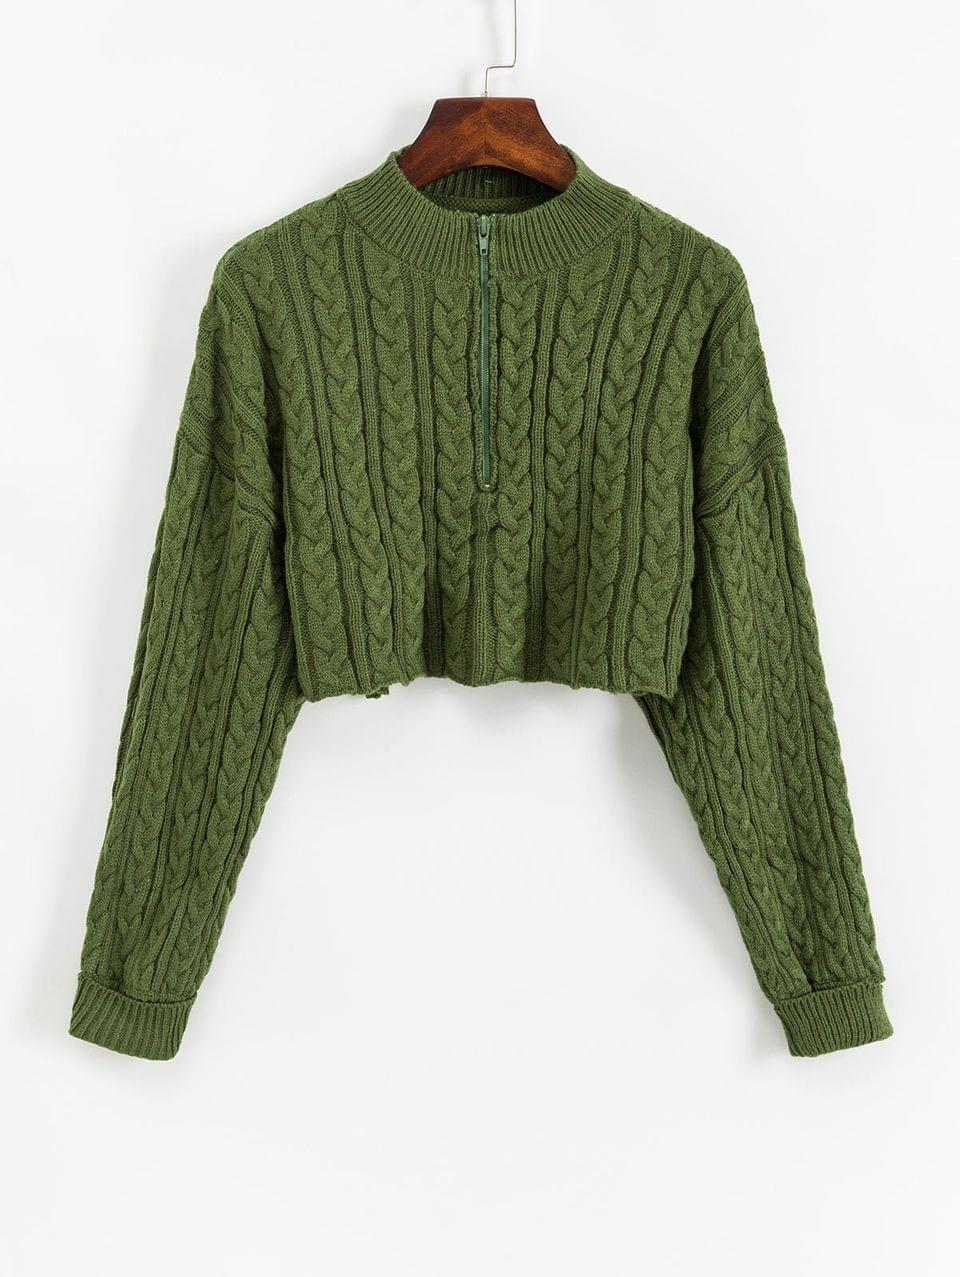 Women's Half Zip Cropped Cable Knit Sweater - Shamrock Green S